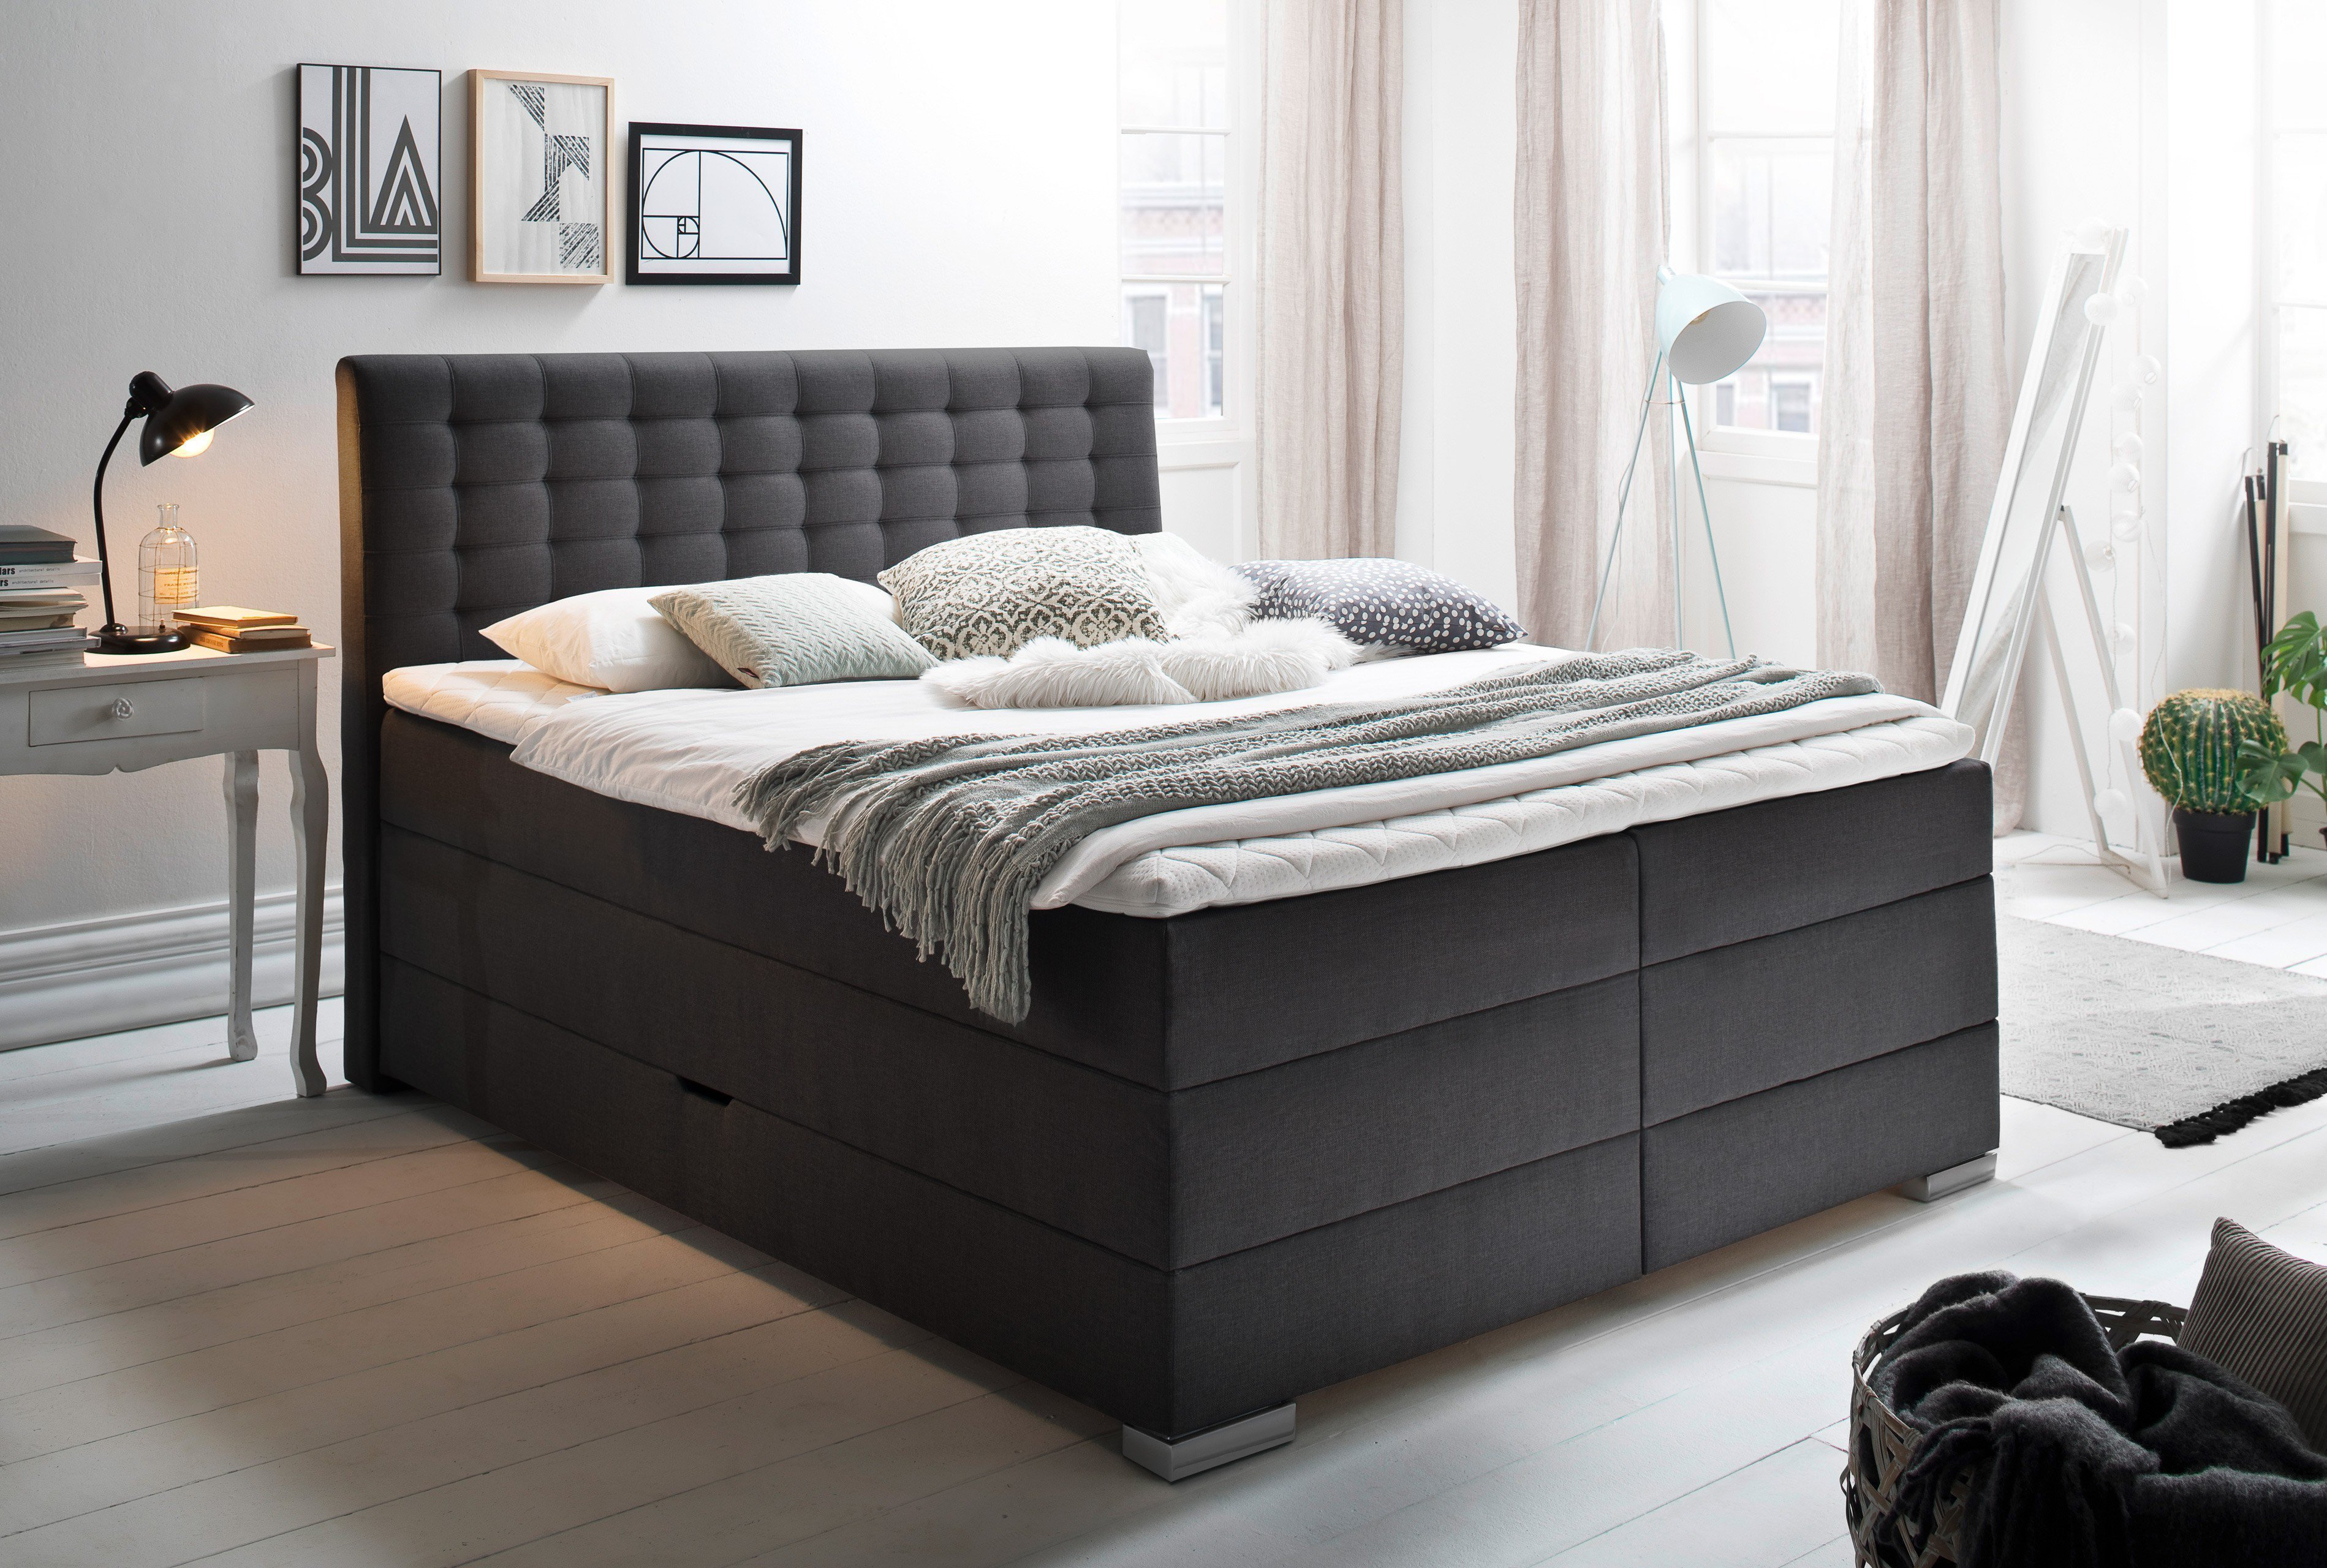 meise boxspringbett lenno in anthrazit inklusive bettkasten m bel letz ihr online shop. Black Bedroom Furniture Sets. Home Design Ideas